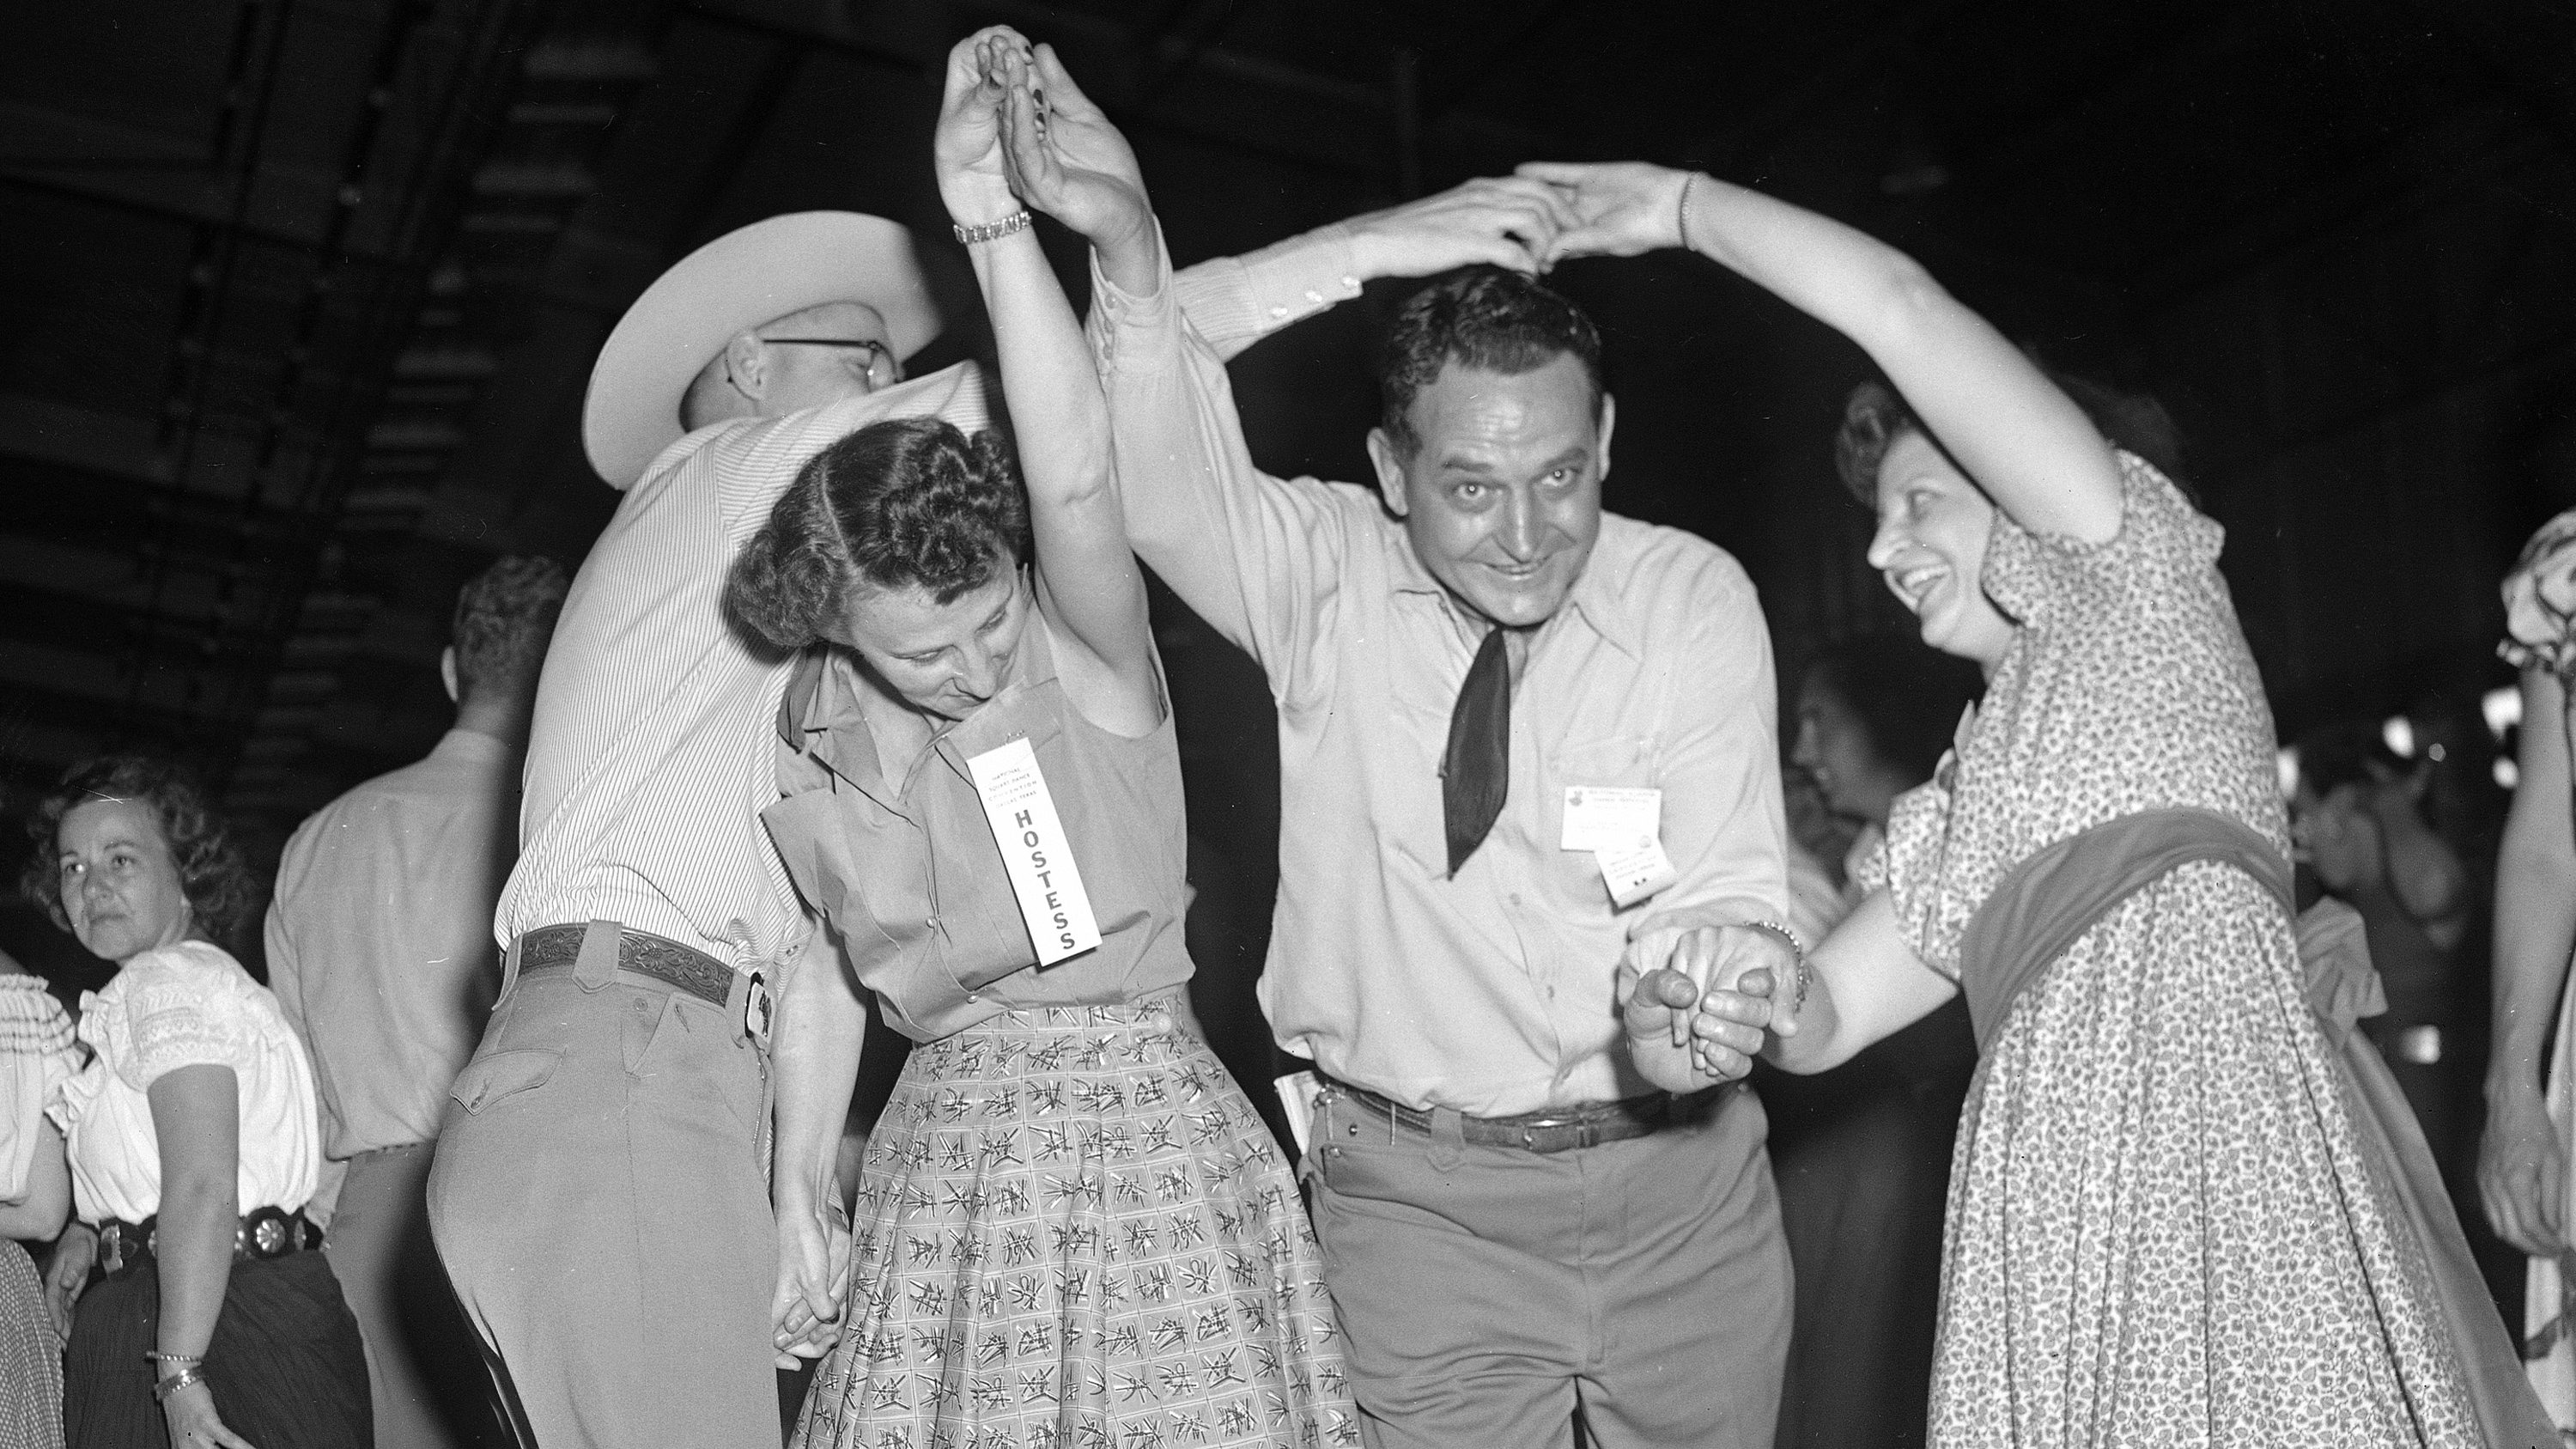 From early morning until 1 am, square dancers from the U.S. and Canada sway and swing at the third annual National Square Dance convention under way in Dallas, Texas, April 8, 1954. From left: Denis Donovan of Vancouver; Mrs. and Mr. C.M. McKinney of Corpus Christi; and Julia Winkler of Milwaukee. The three-day convention ends Saturday.